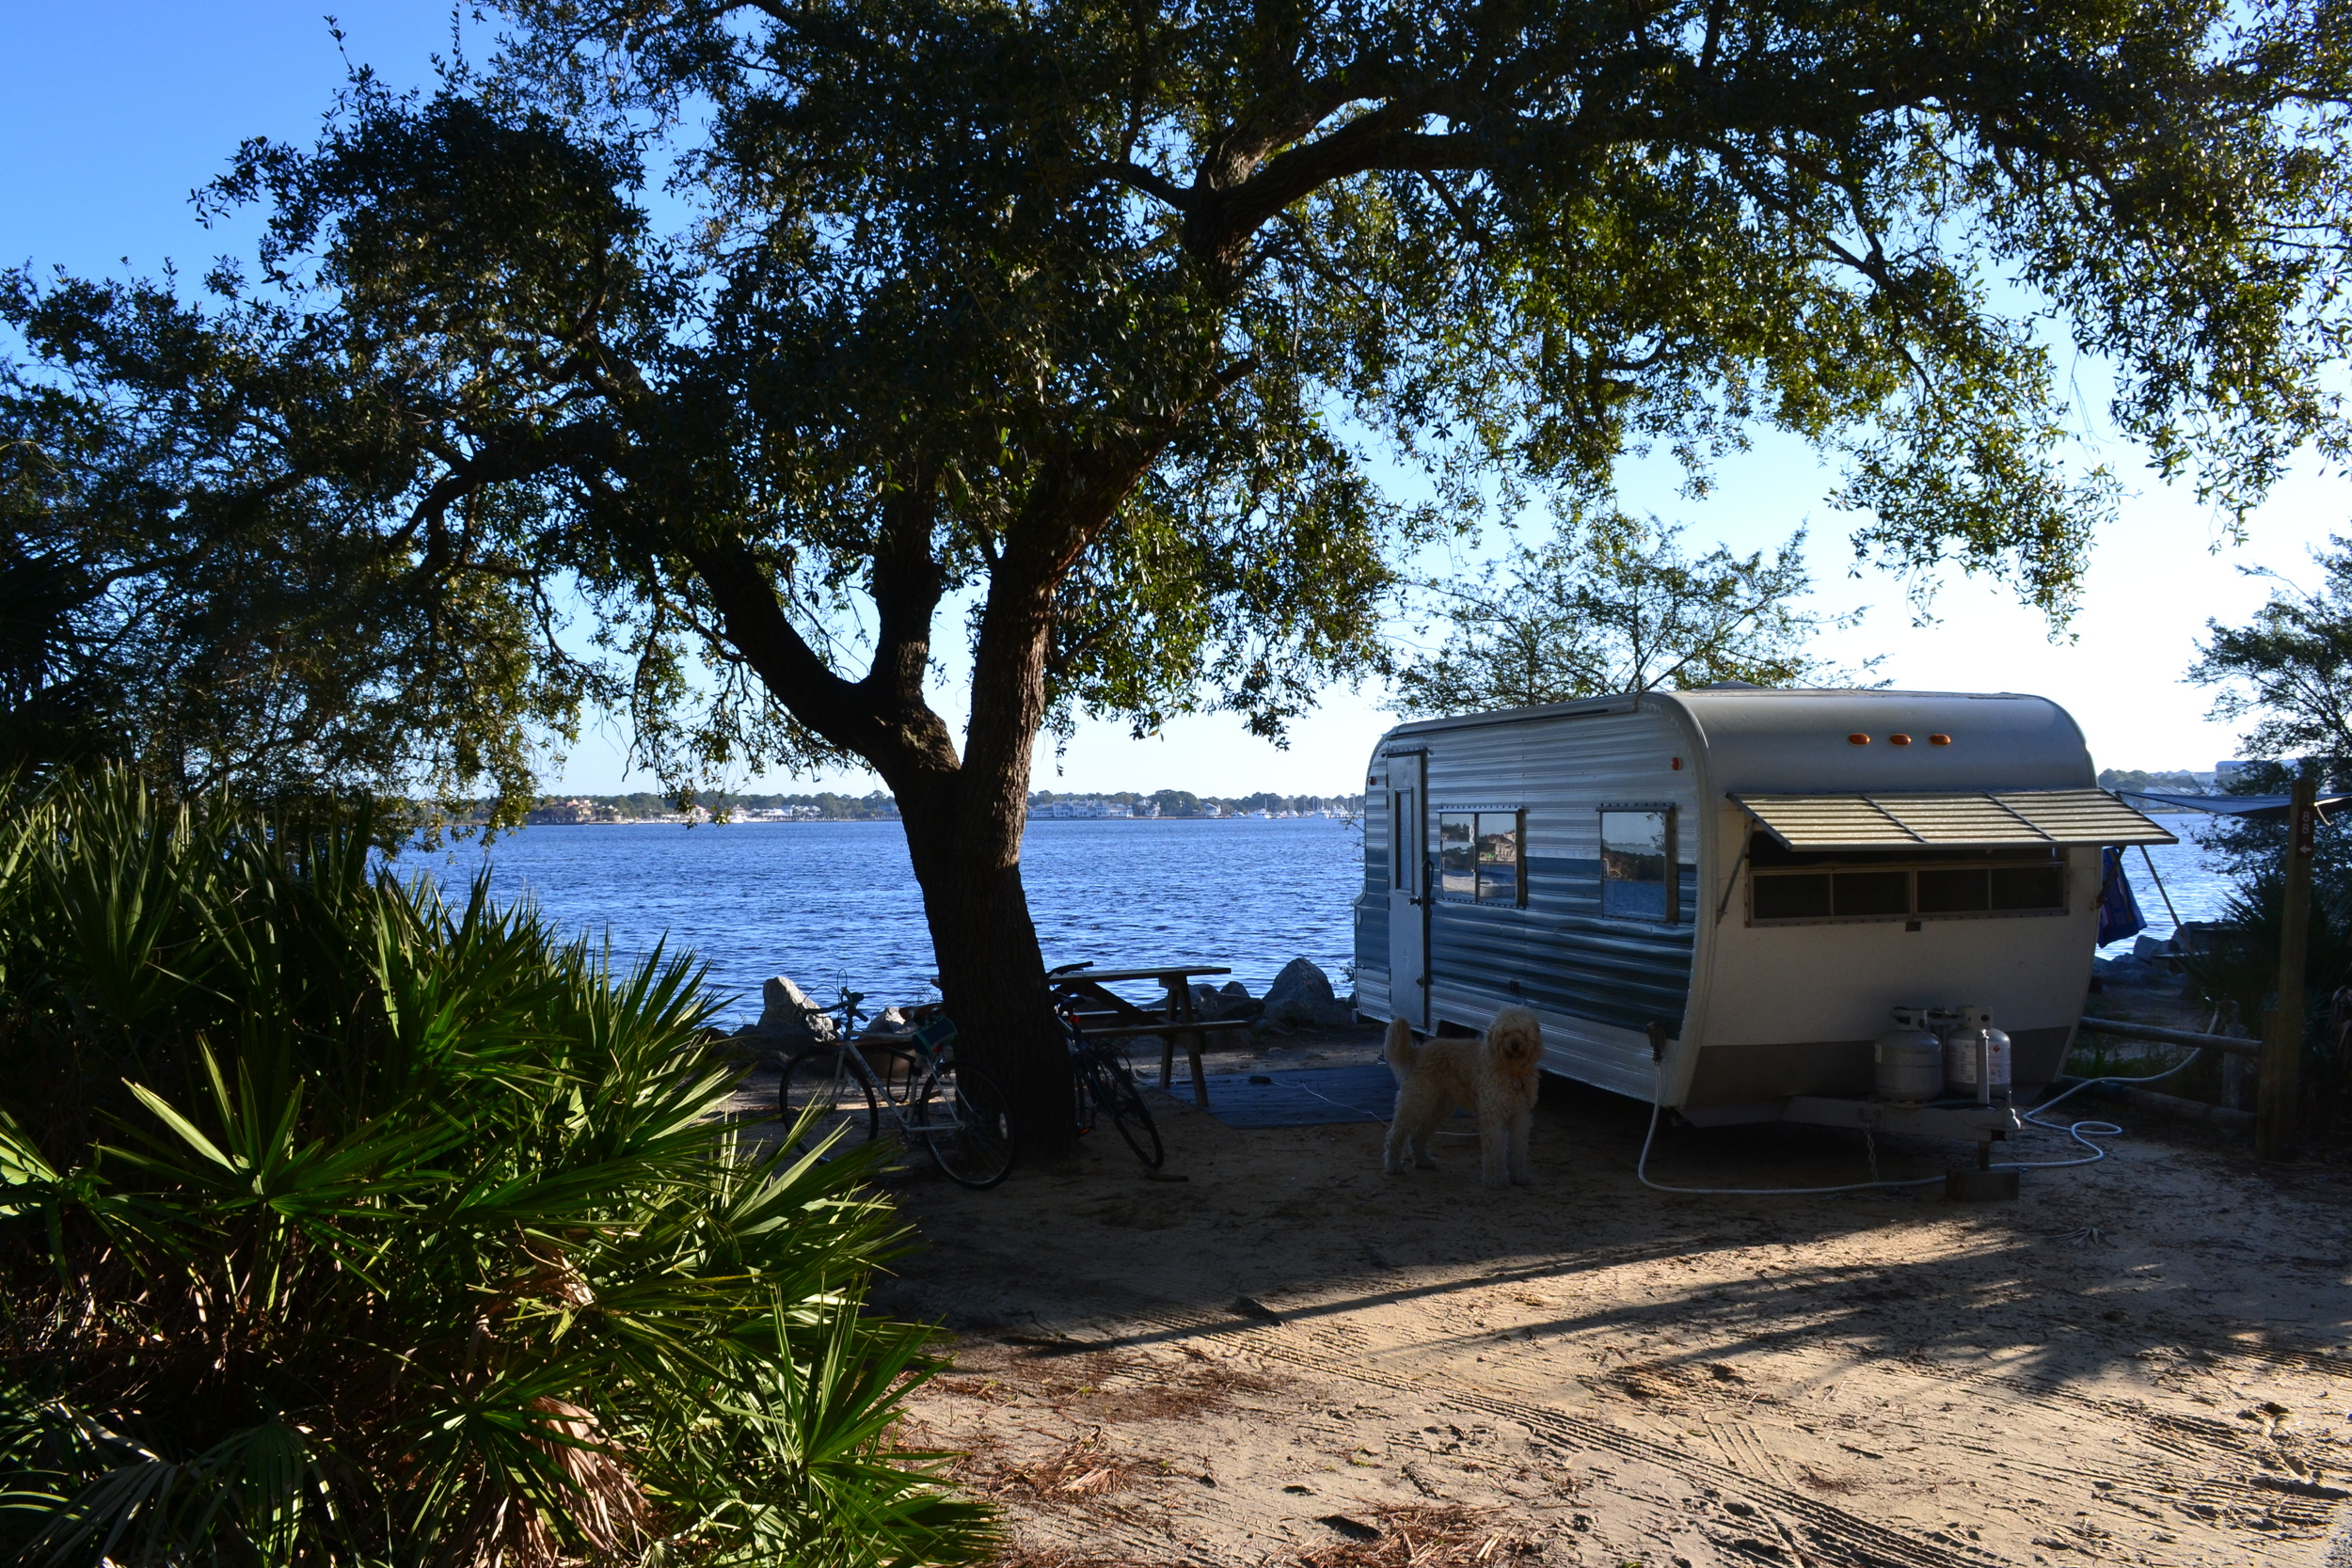 Our primo water front spot at St. Andrews State Park in Panama City, FL.